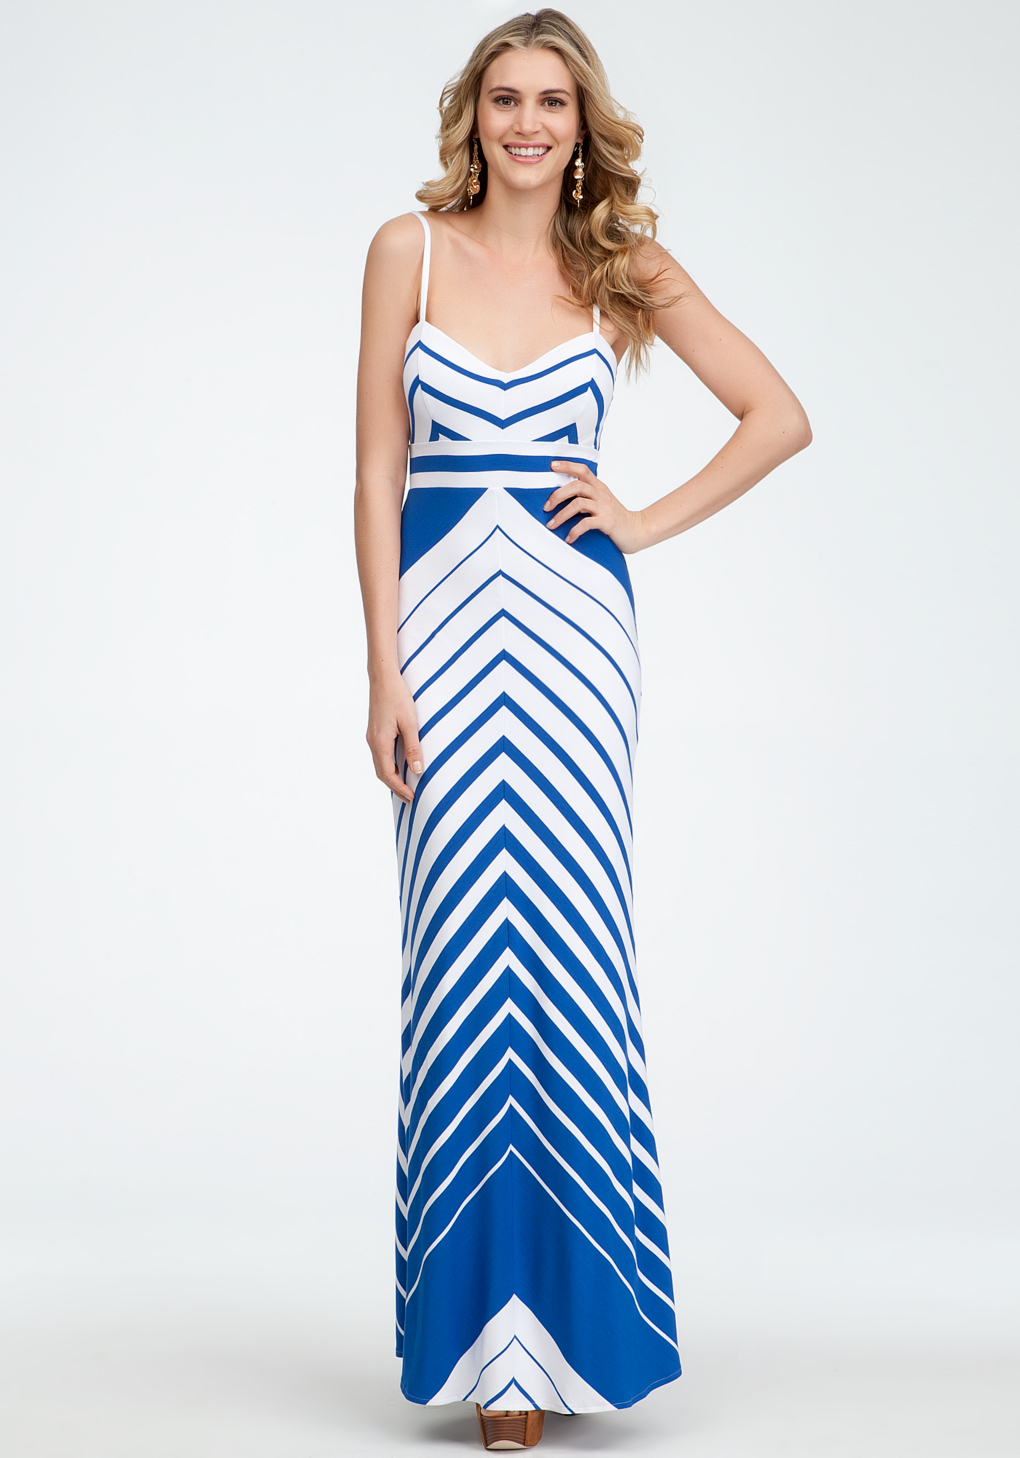 Bebe Empire Waist Stripe Maxi Dress in Blue  Lyst